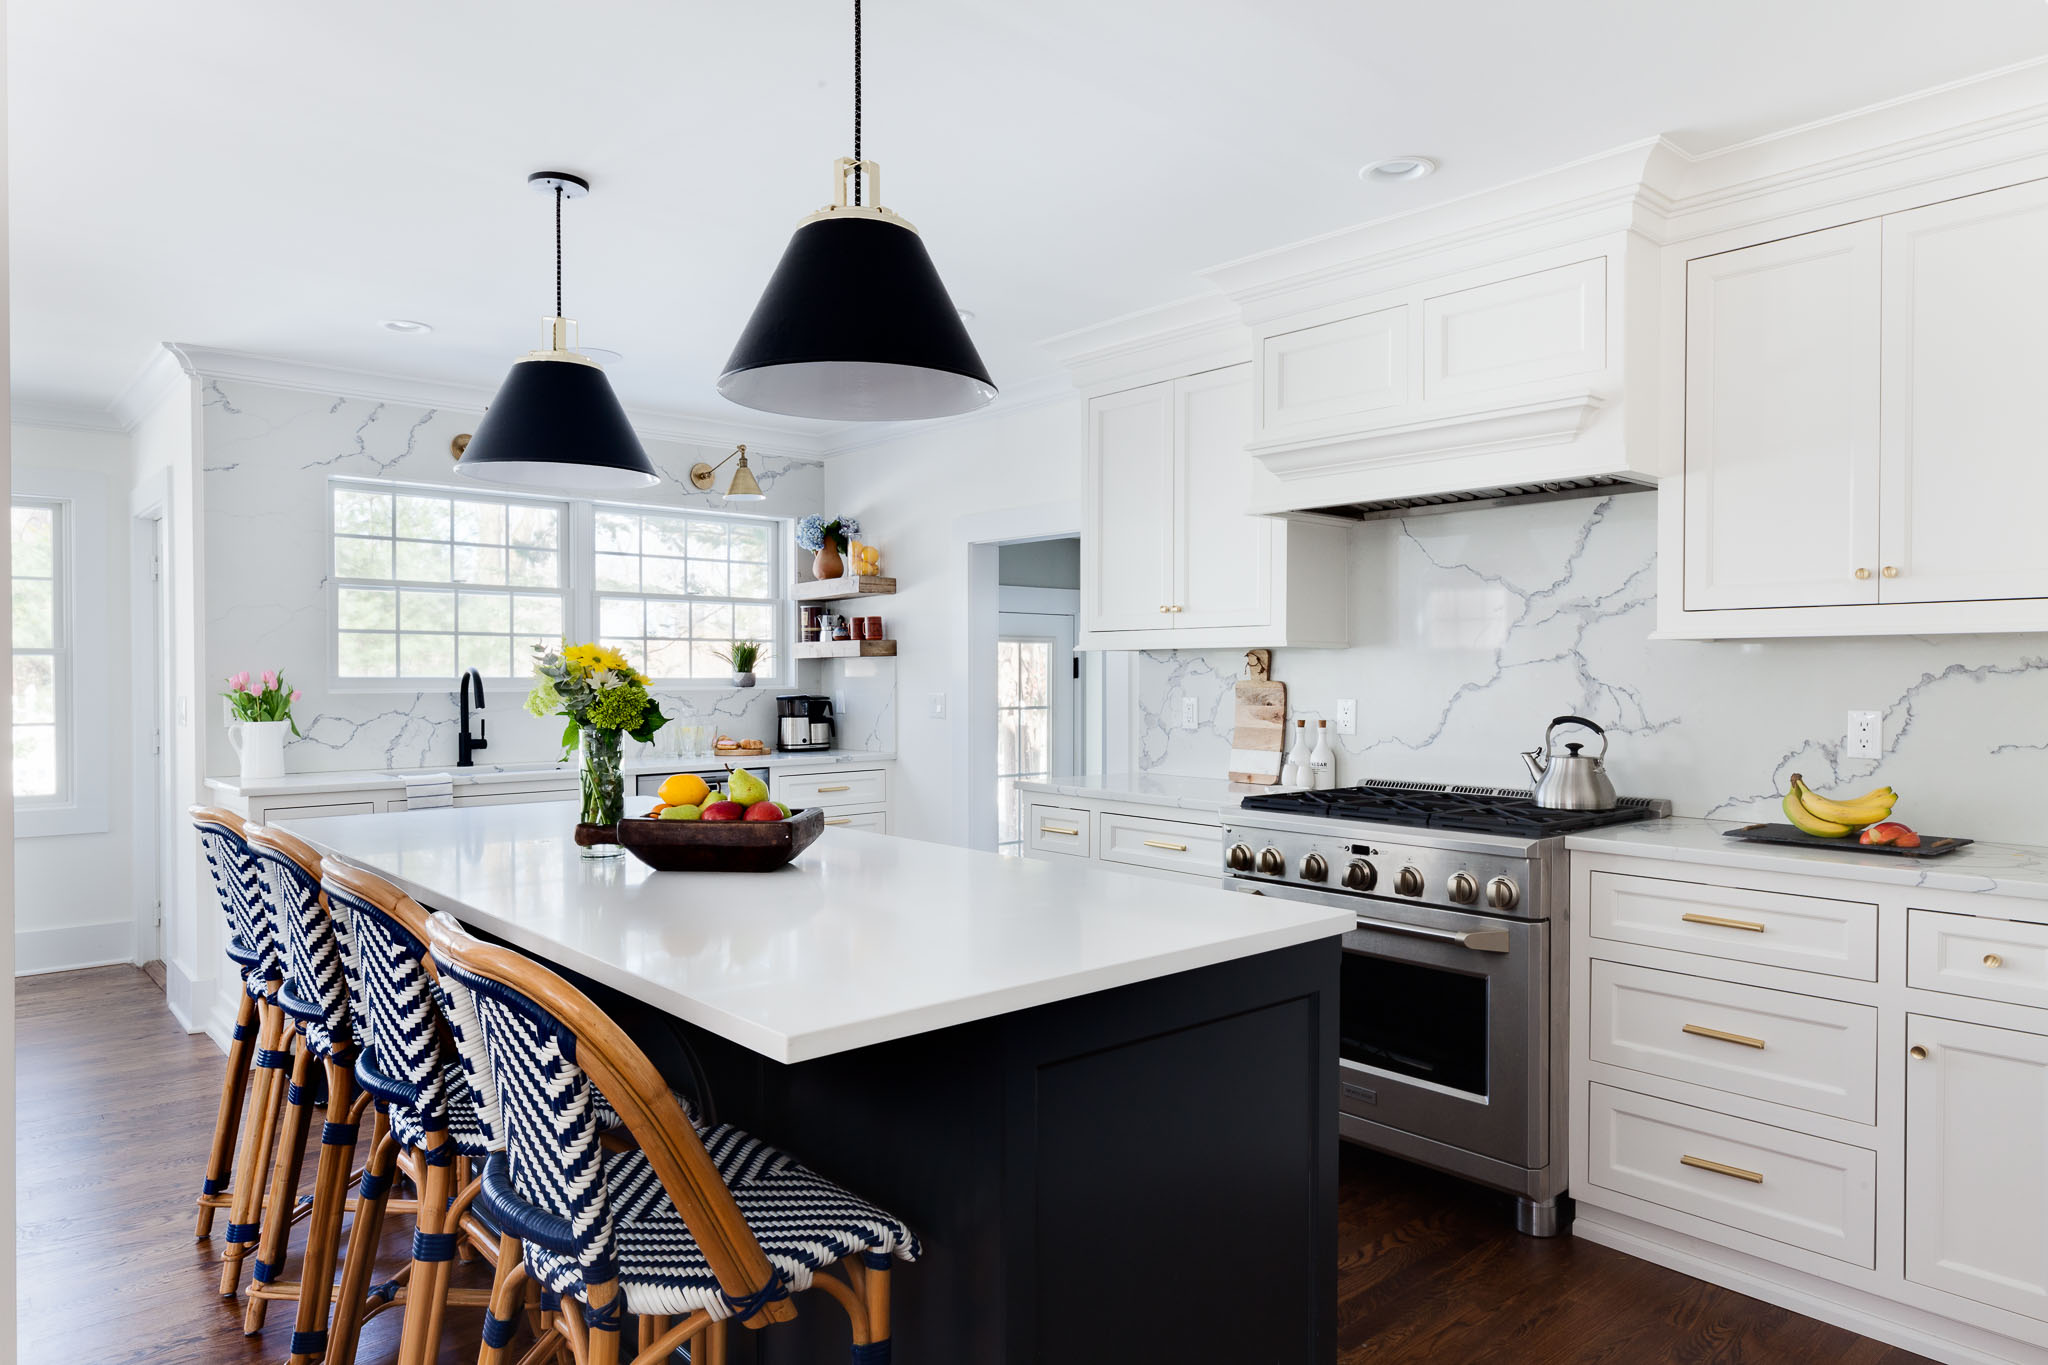 Choosing Cabinet Hardware For Your Kitchen Remodel